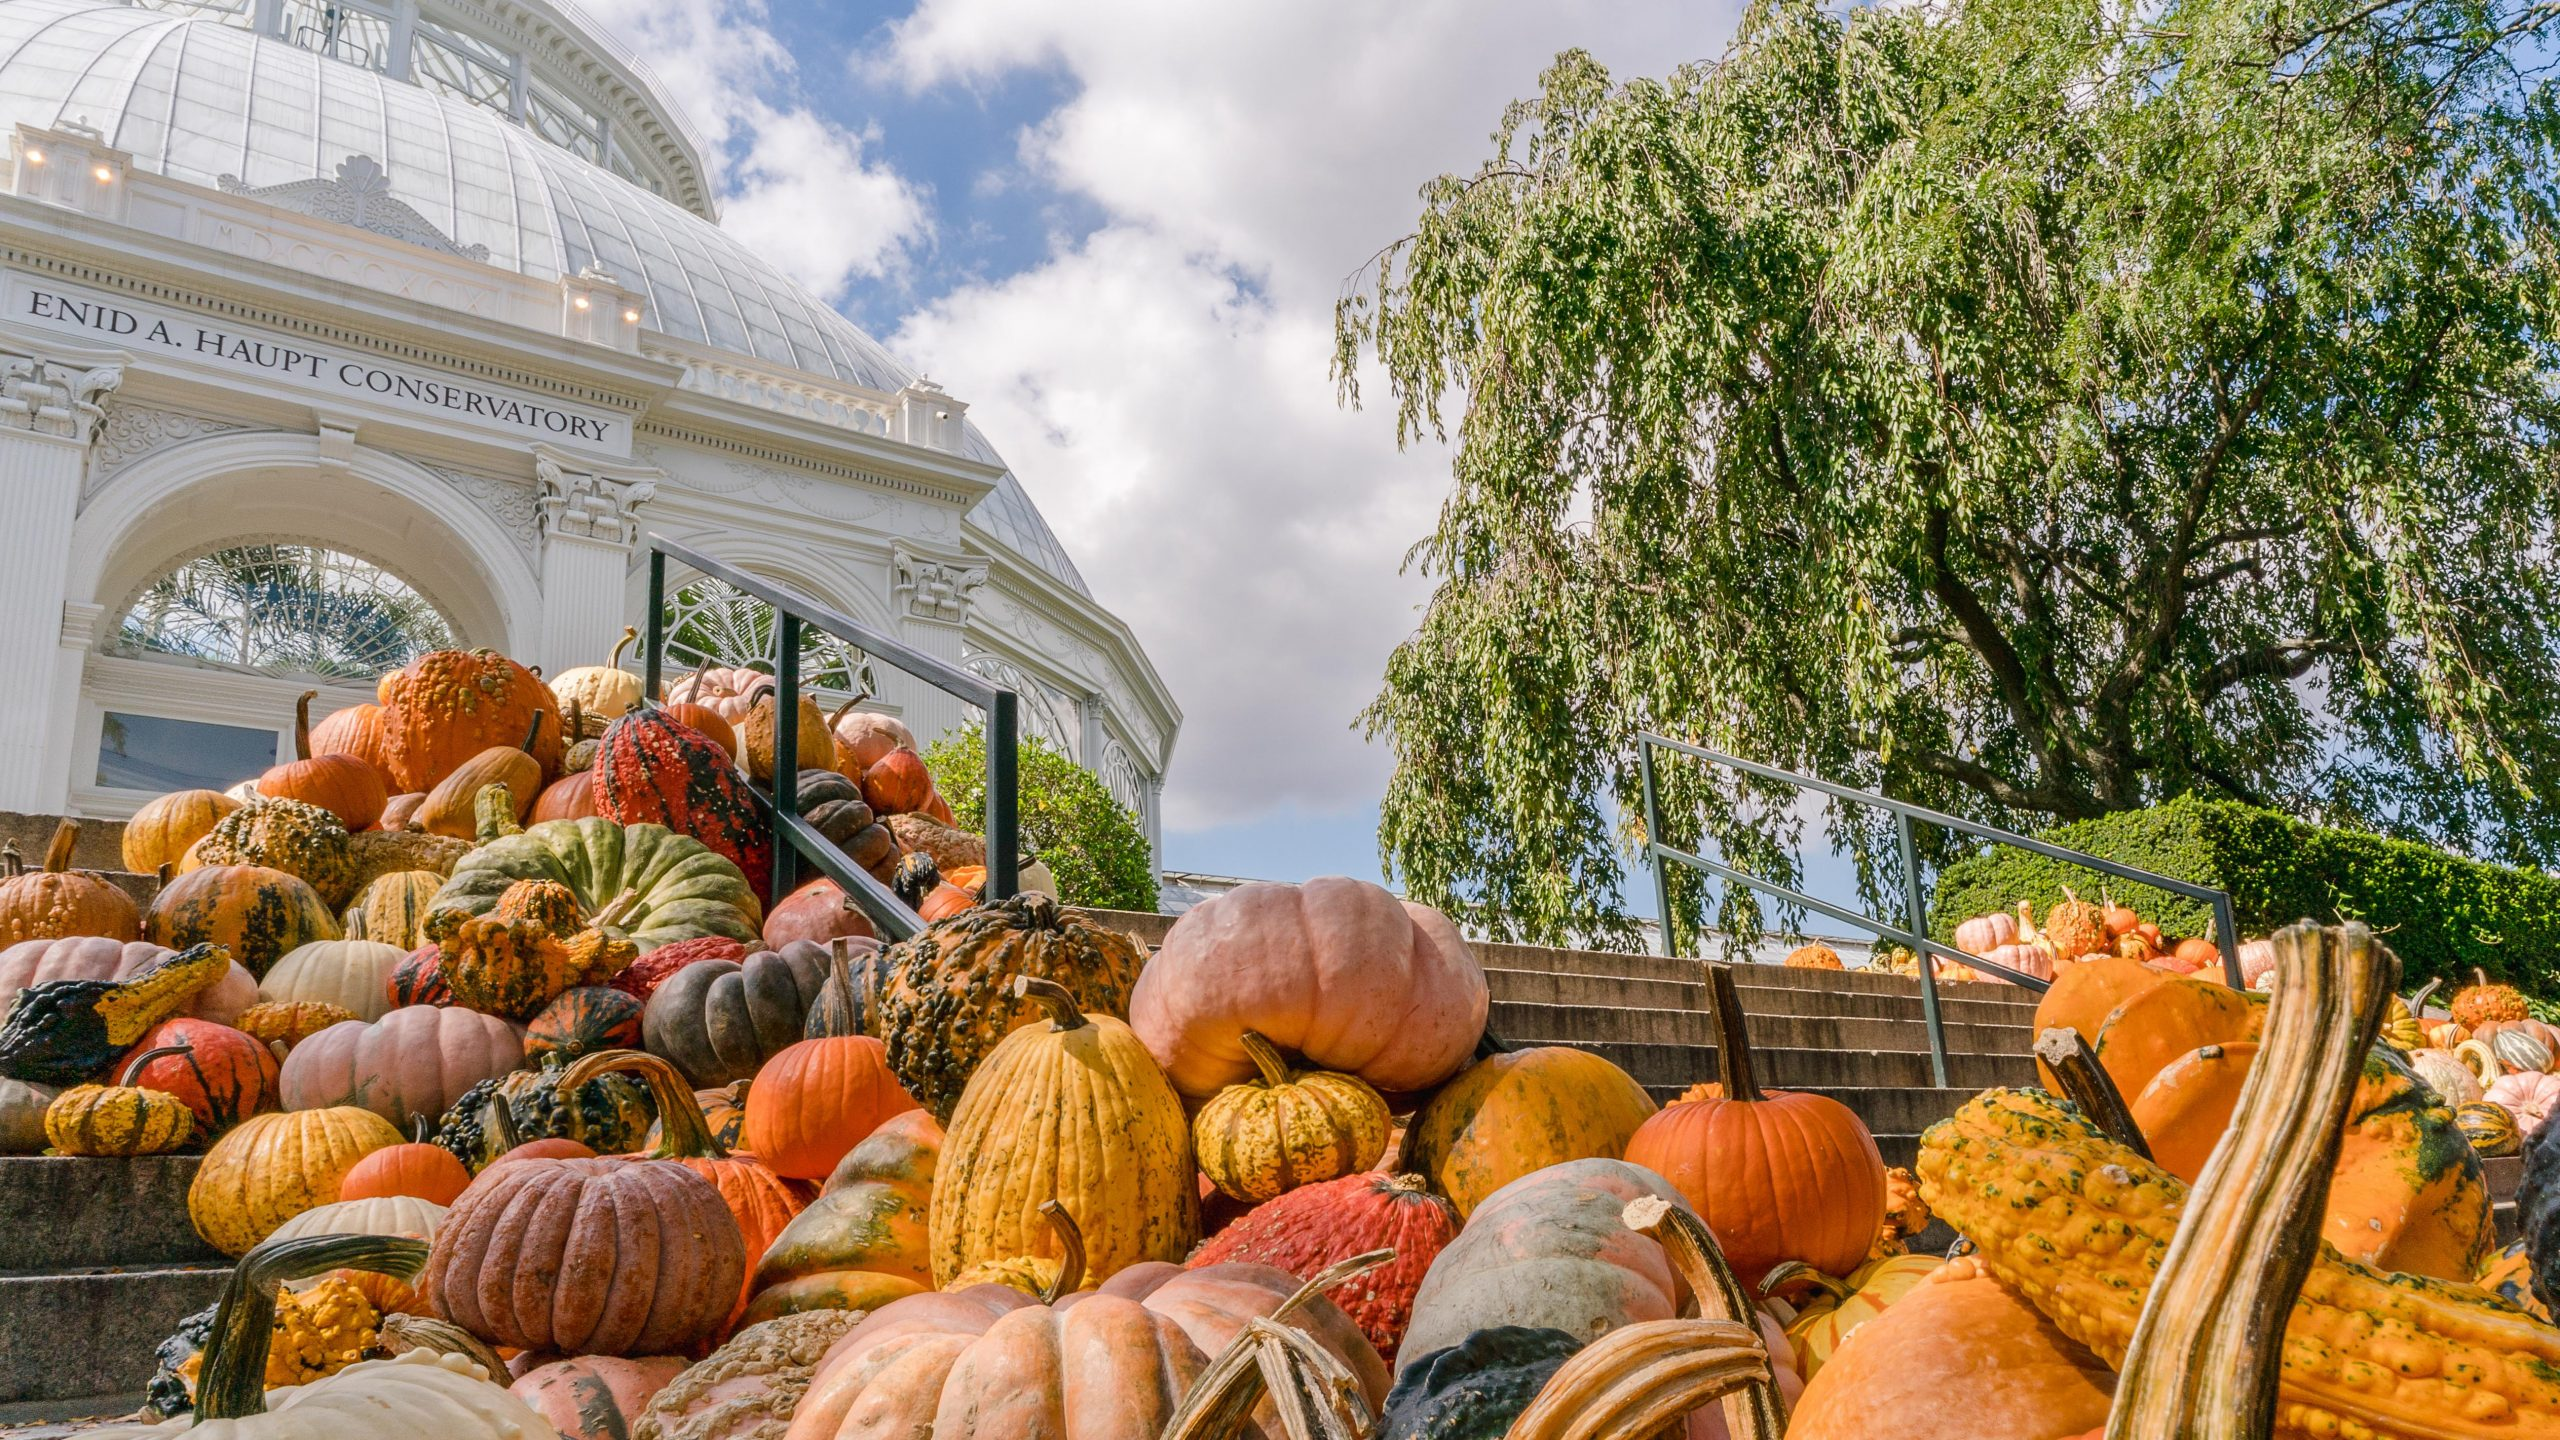 A hill of assembled pumpkins and gourds in green and orange covers a staircase leading up to a glass Conservatory dome